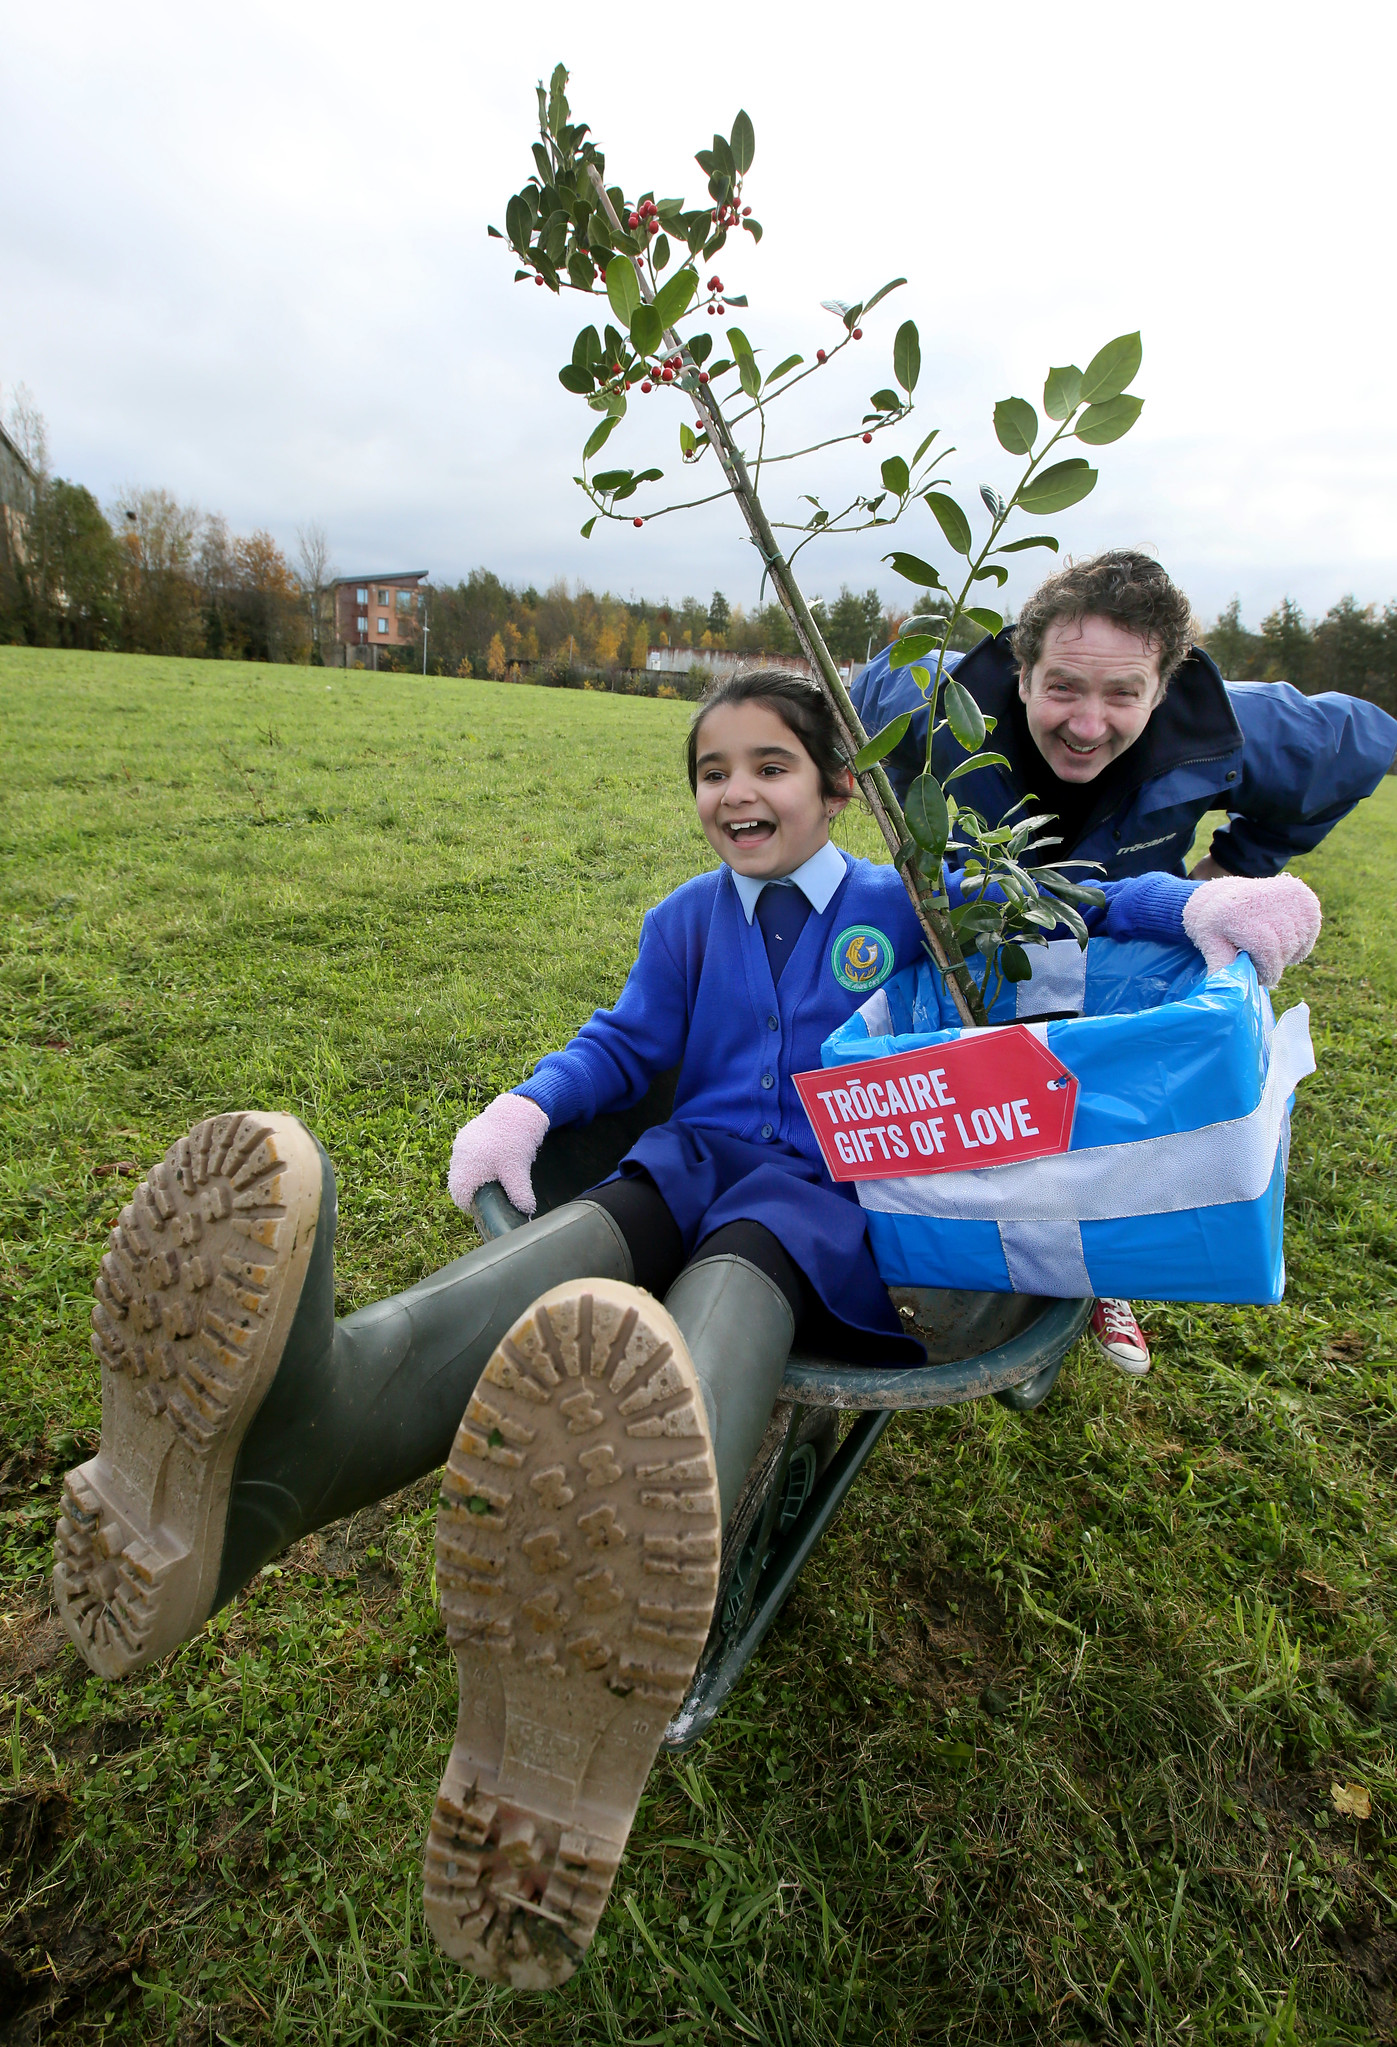 Garden designer Diarmuid Gavin, with Jayden Keogh (aged 7) from Scoil Aoife Community National School, helped to launch Trócaire's Christmas 'Gifts of Love' for 2019 in Citywest, Dublin. Photo : Mark Stedman